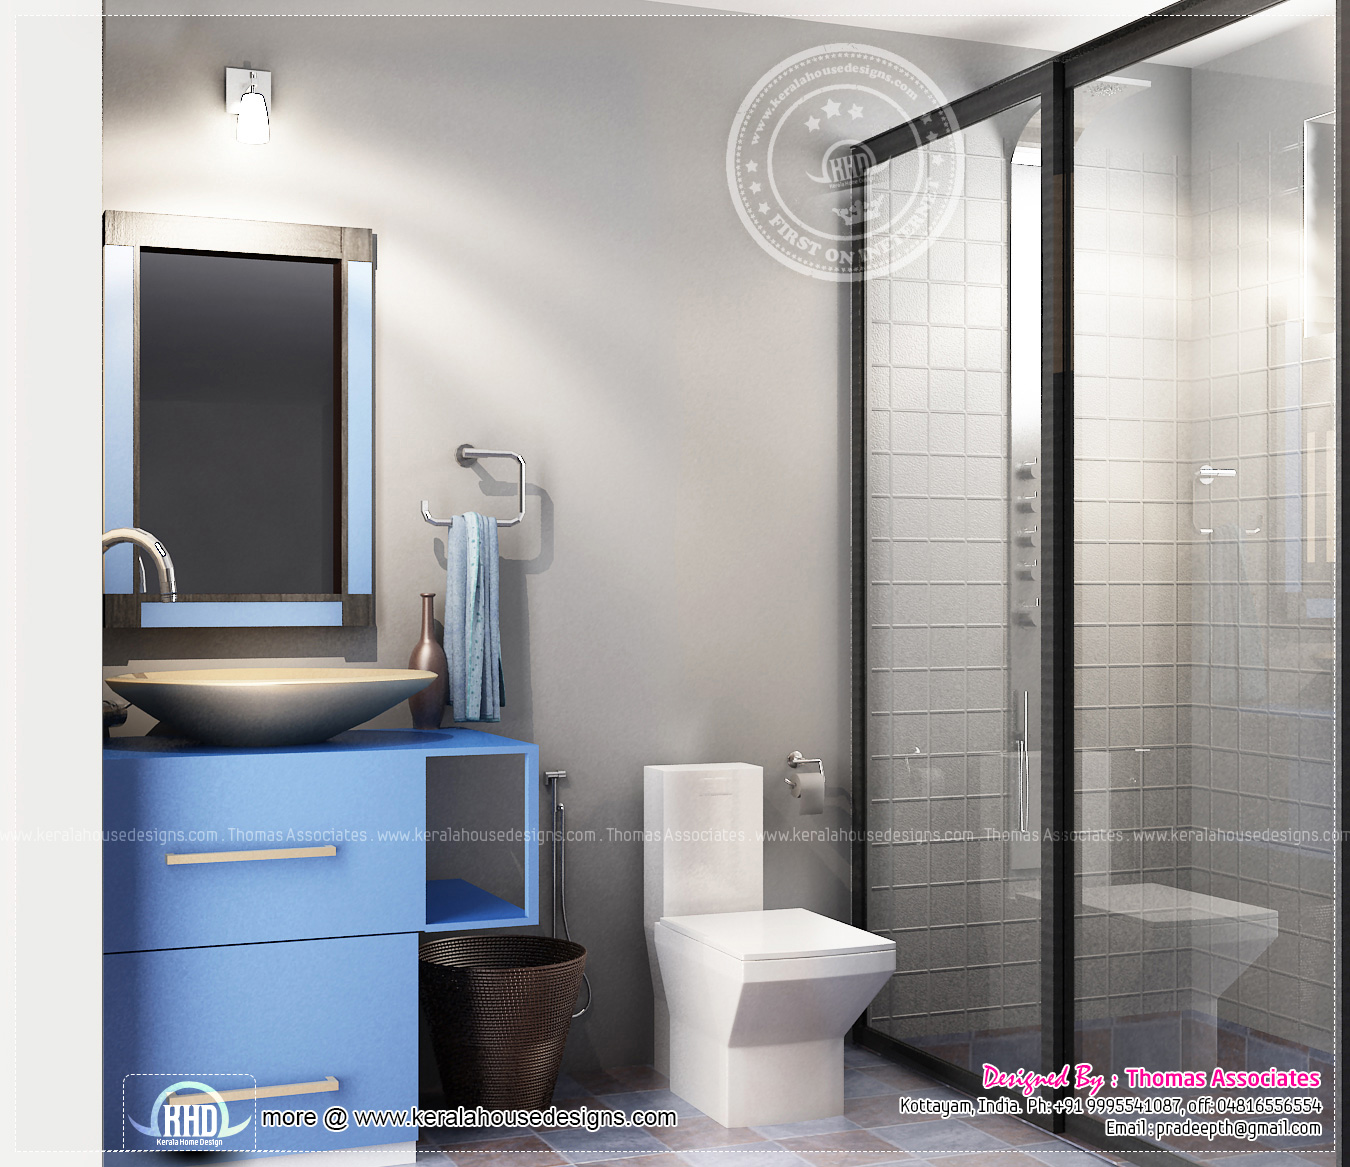 Kerala Home Interior Design Bathroom Creativity